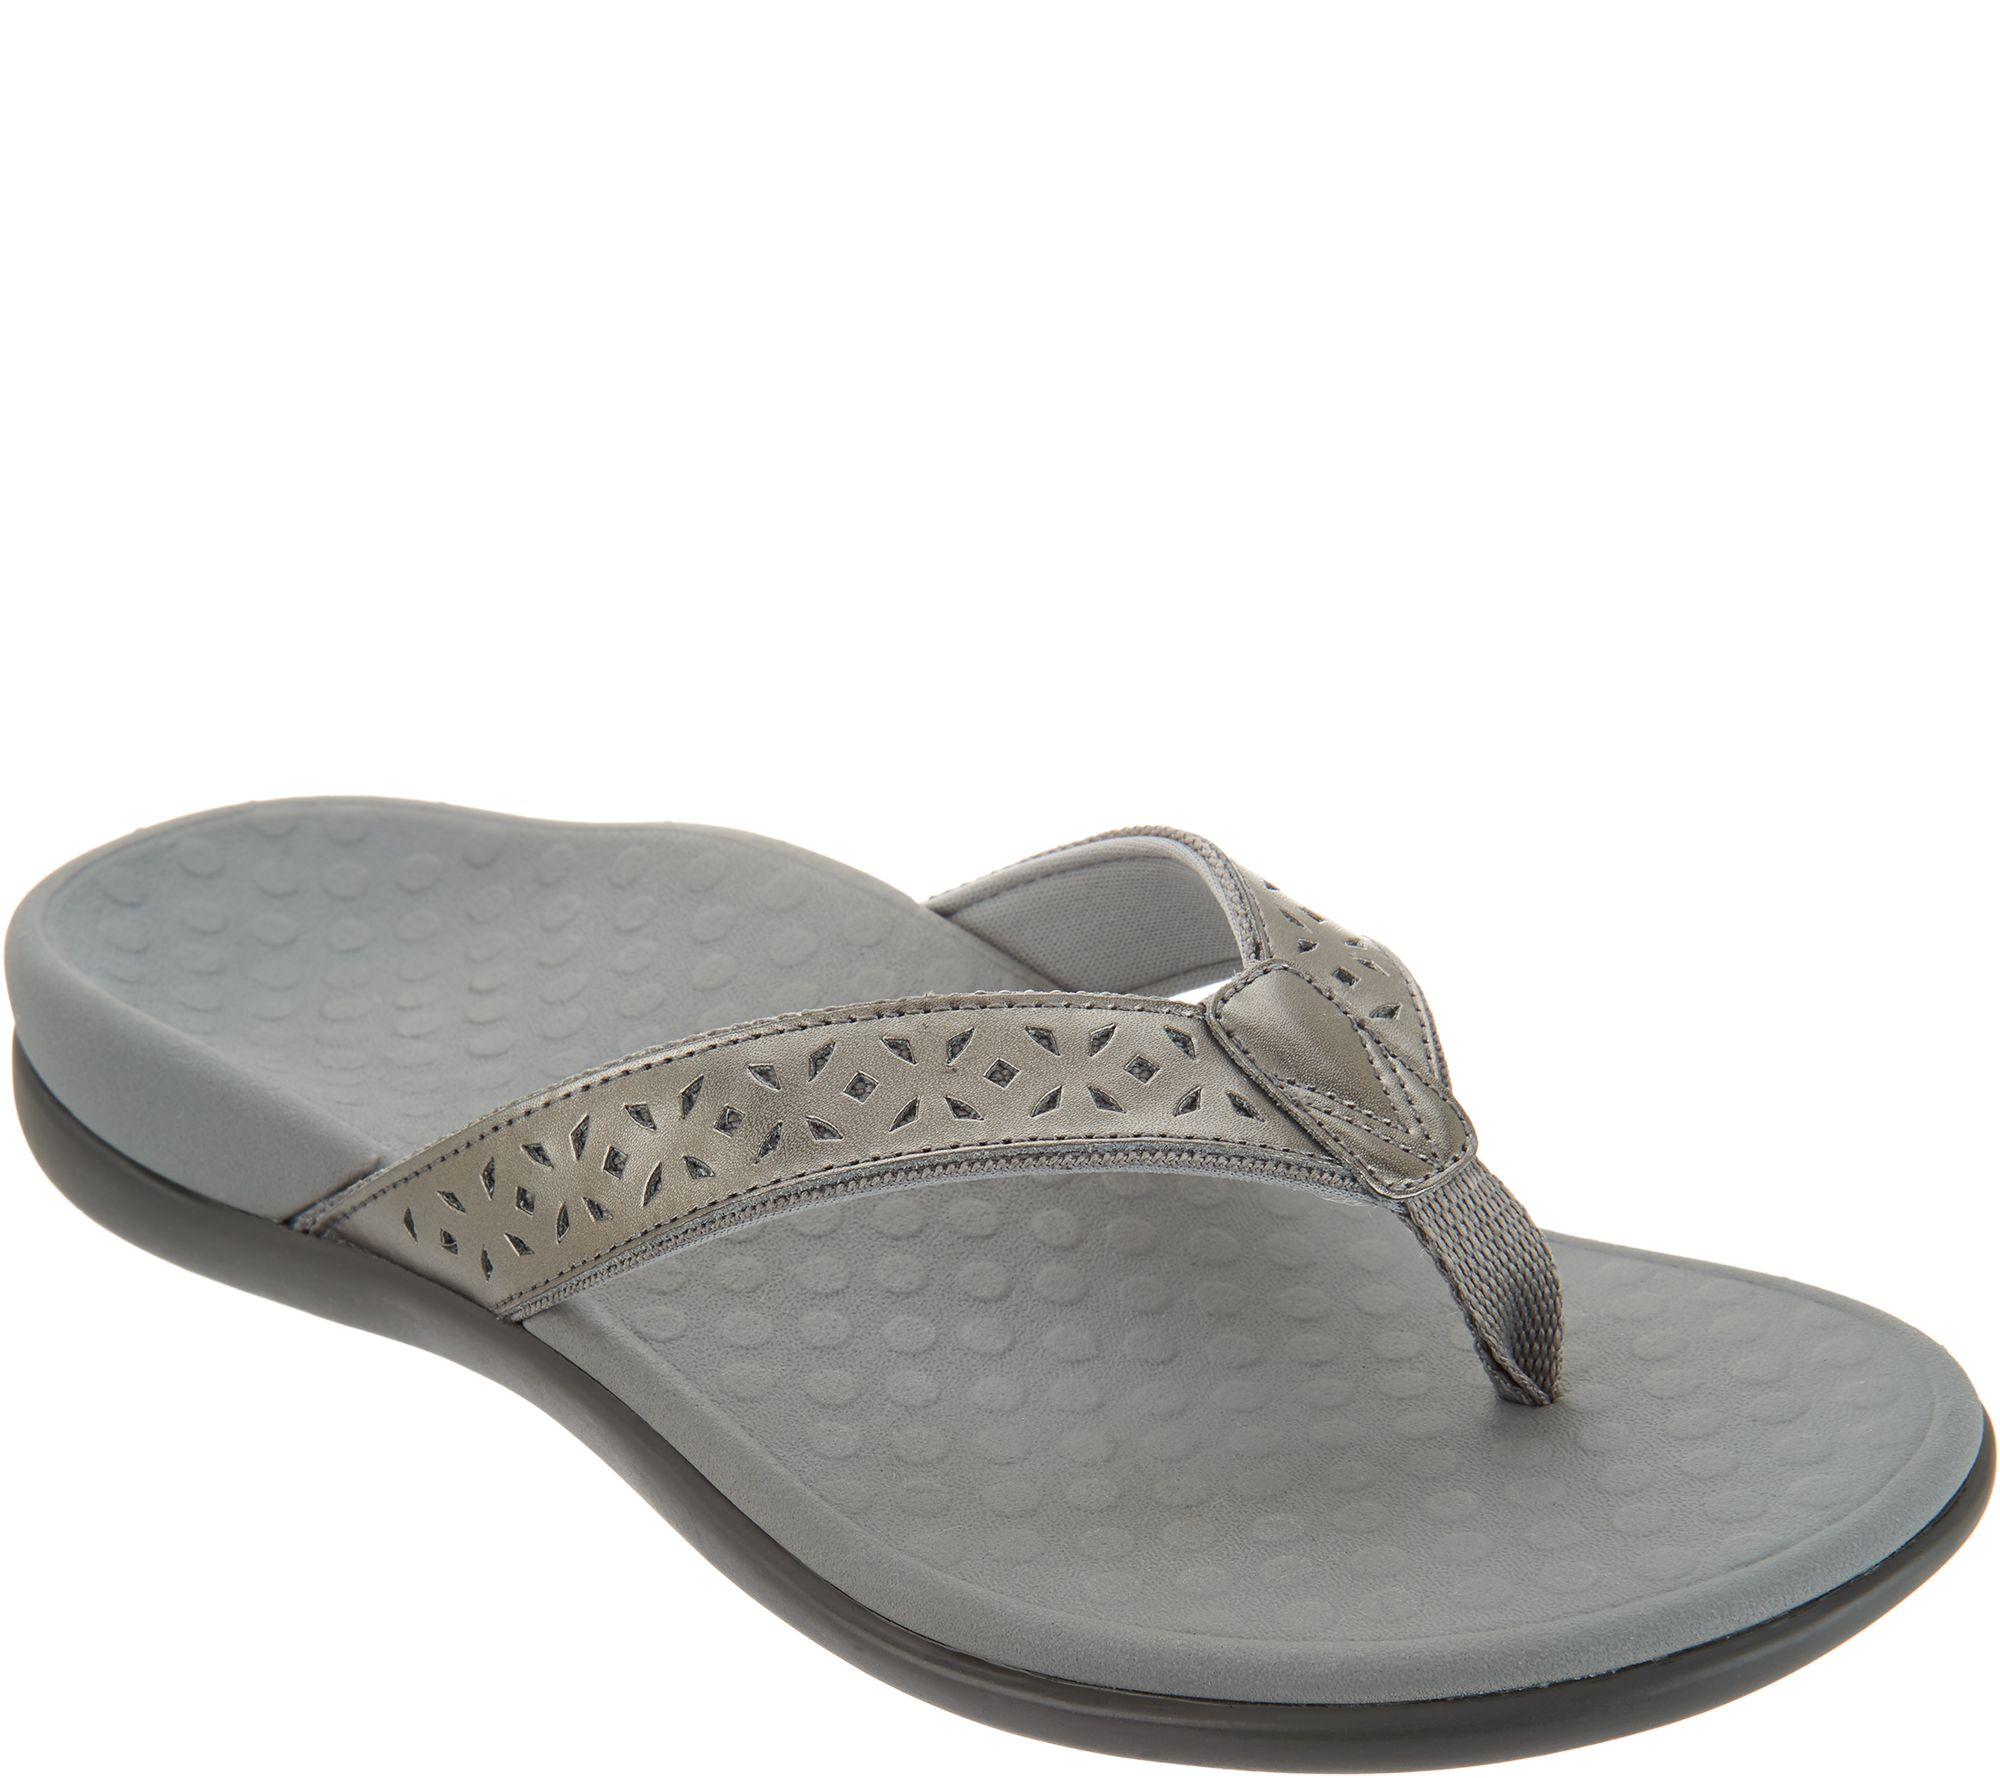 bc7067696276c Vionic Leather Thong Sandals - Tide Anniversary - Page 1 — QVC.com